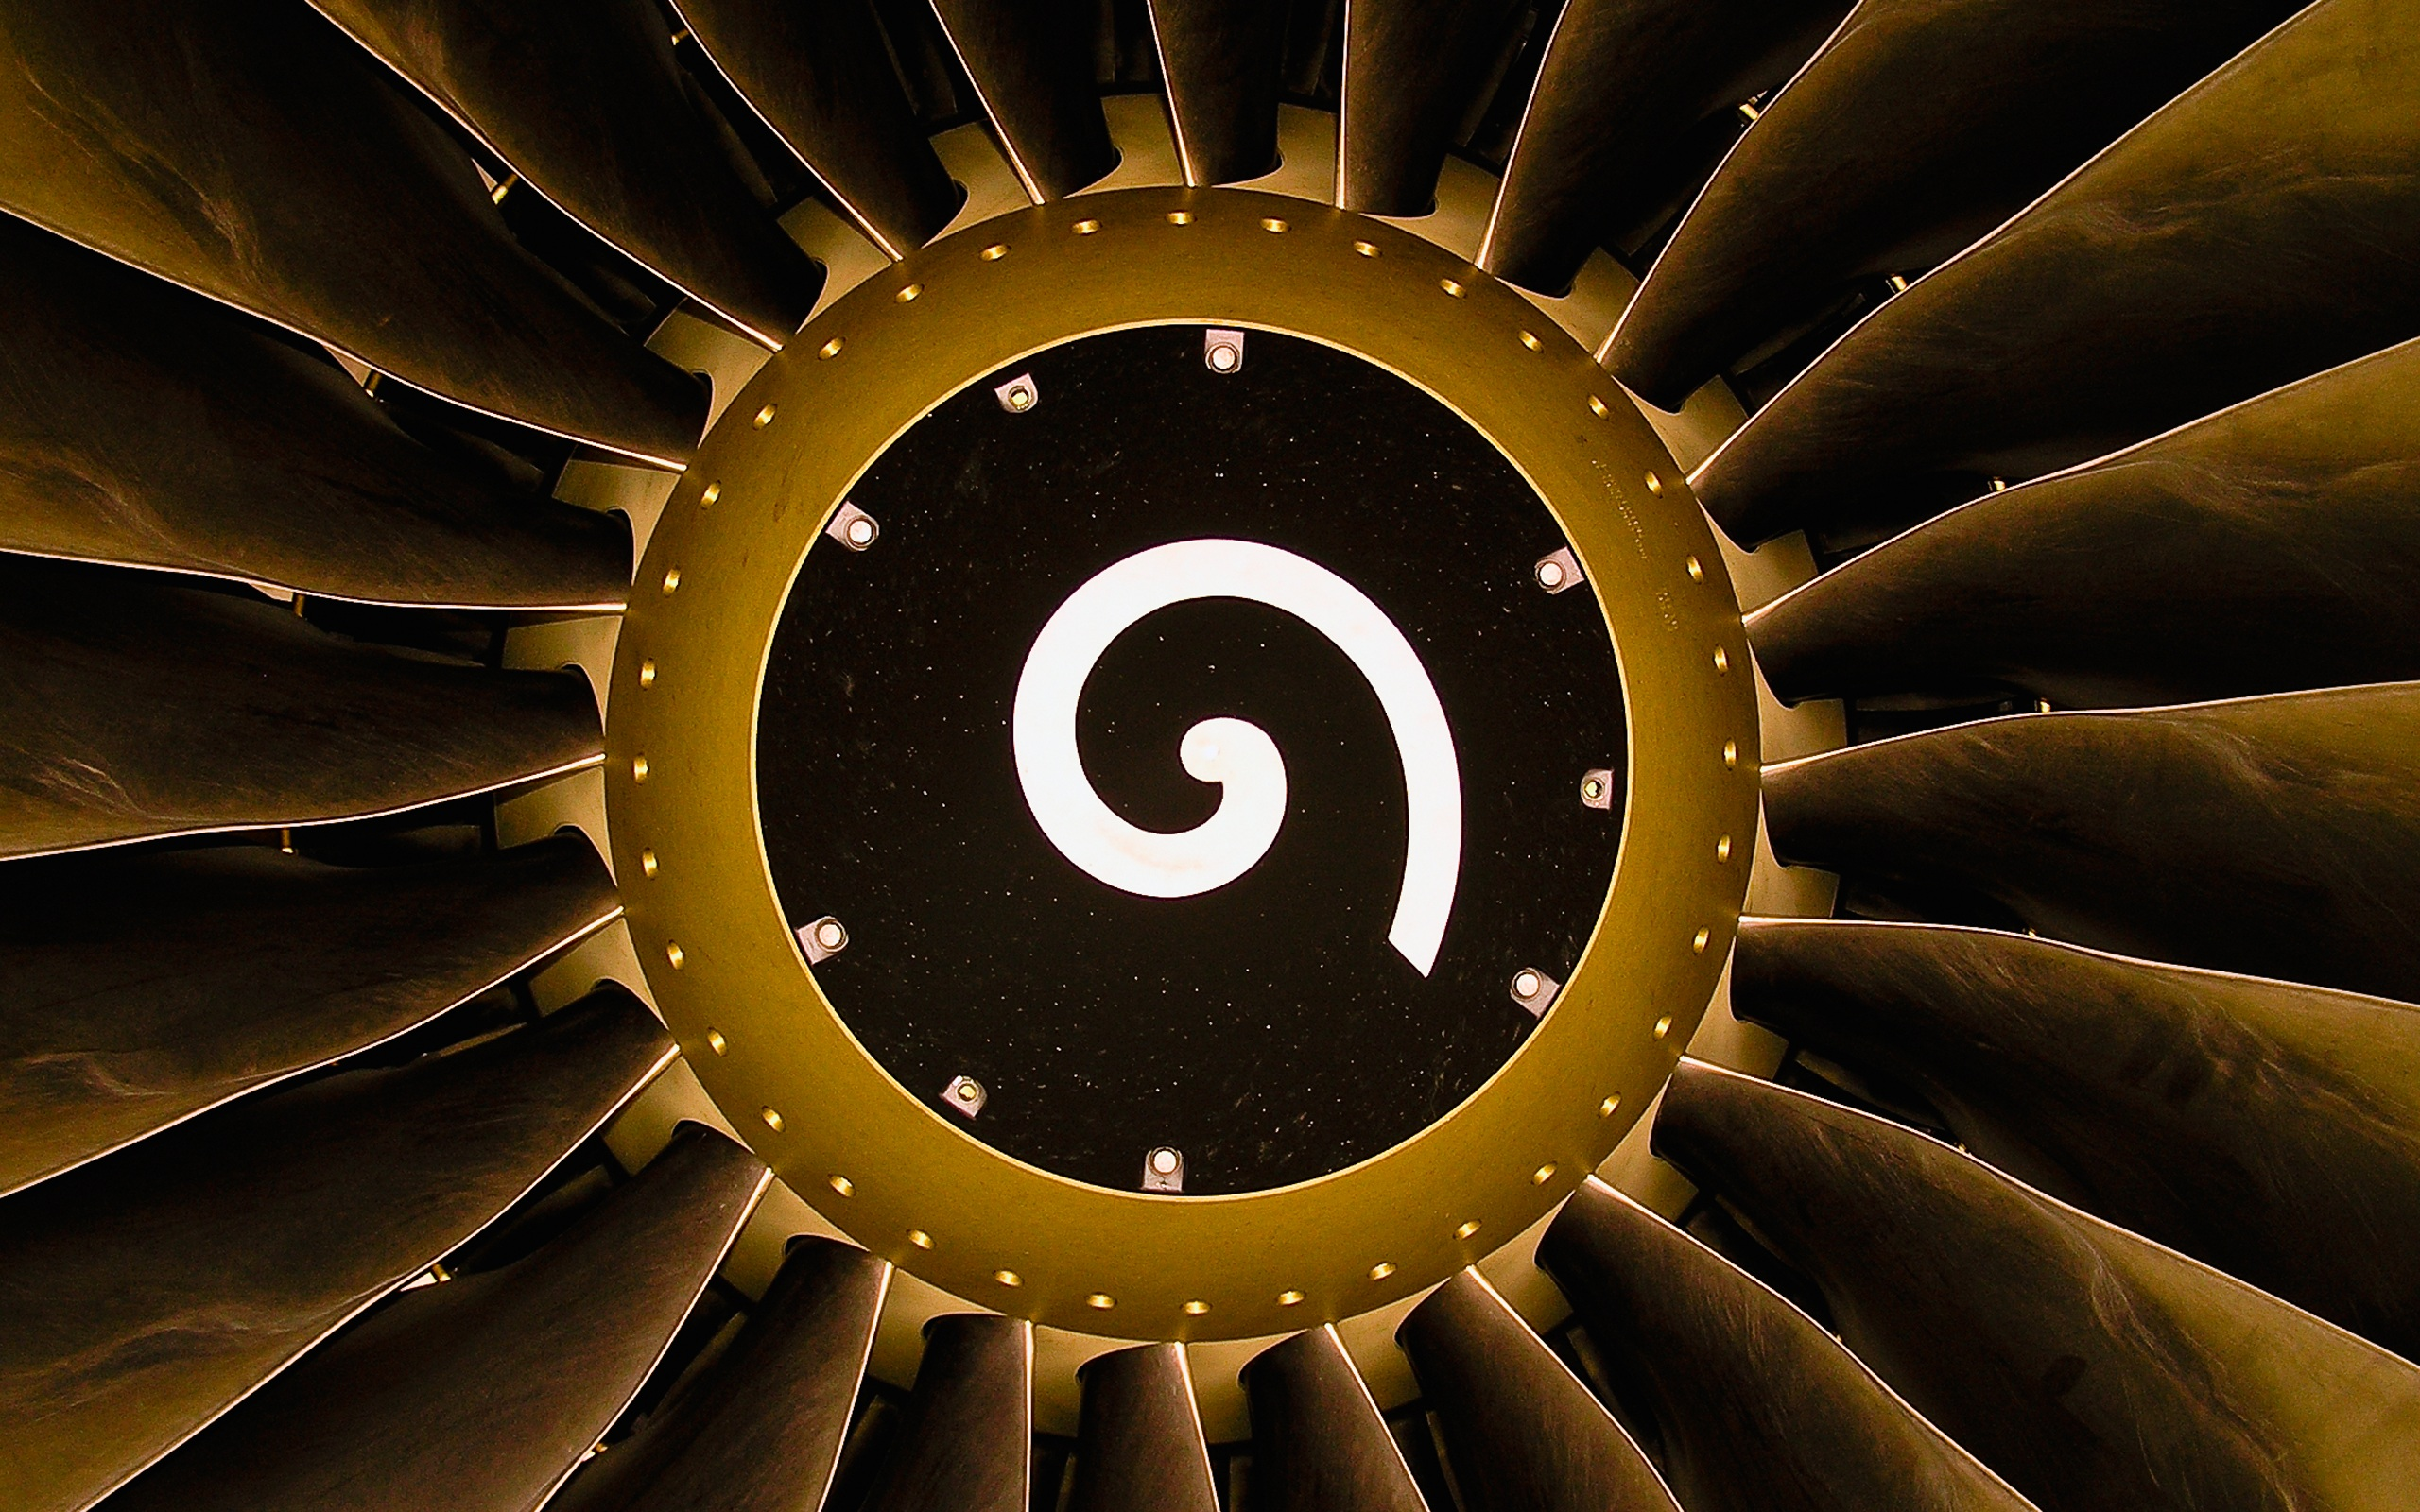 Boeing Jet Engine Full HD Wallpaper And Background Image